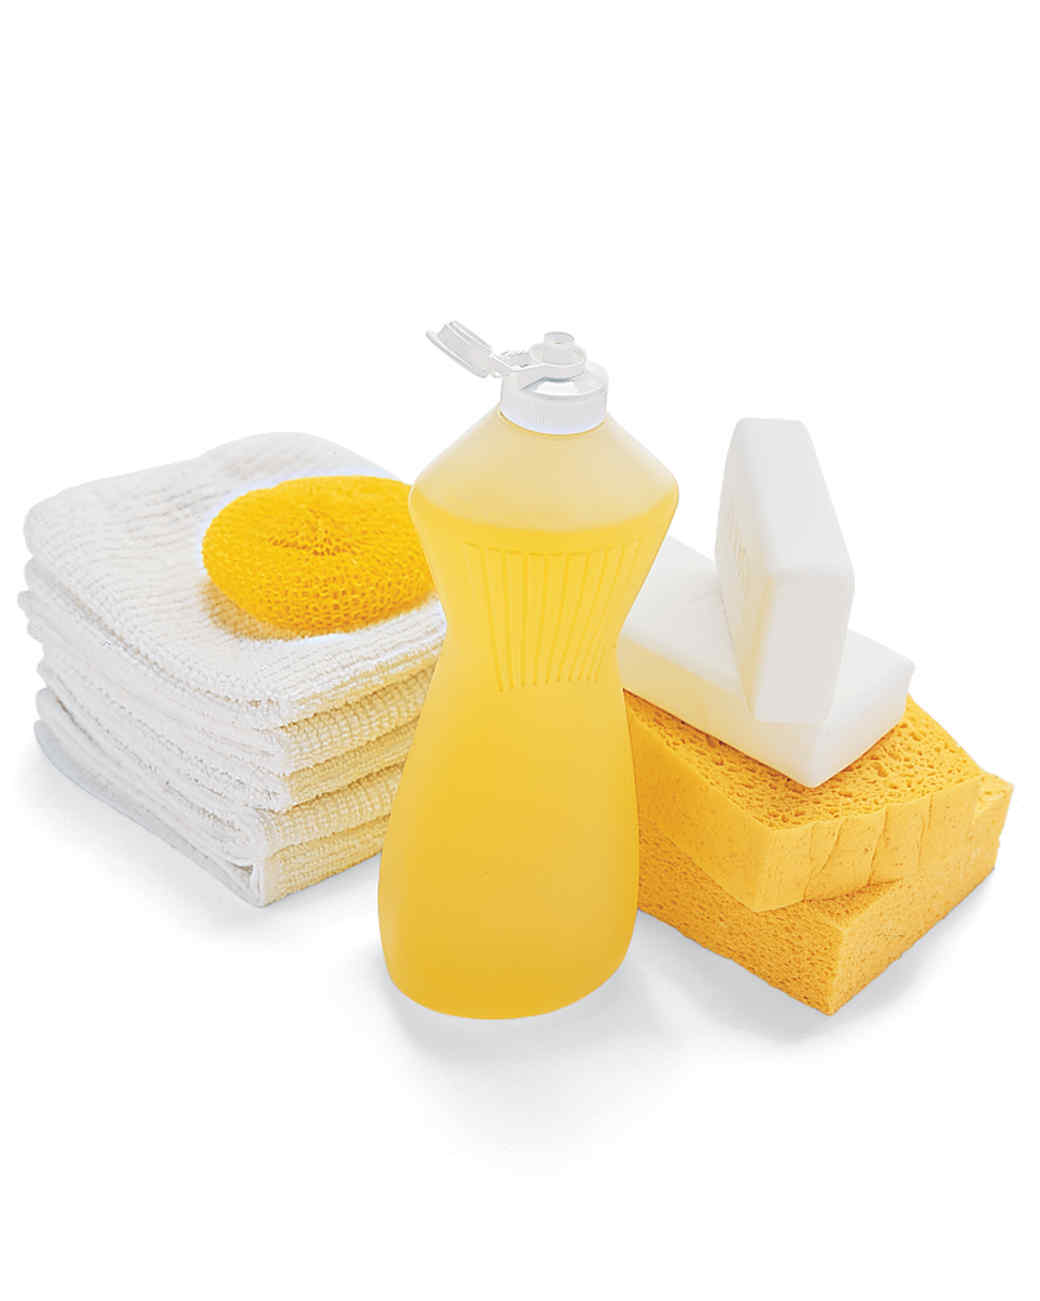 DIY All-Purpose Cleaners